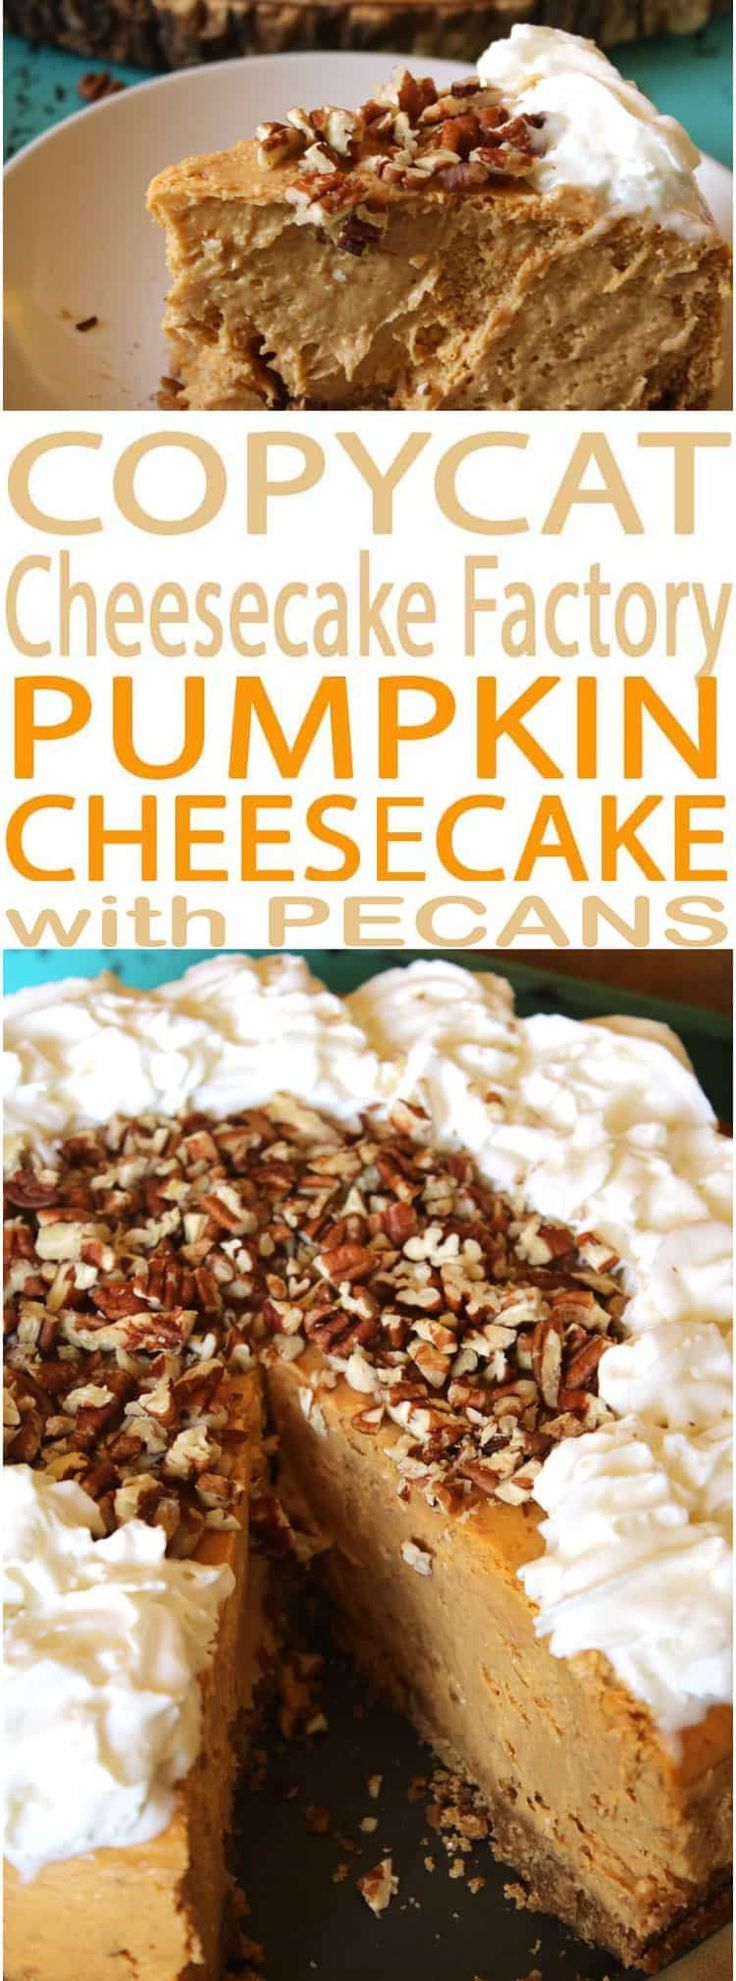 This Copycat Cheesecake Factory Pumpkin Cheesecake recipe is easy to make at home.